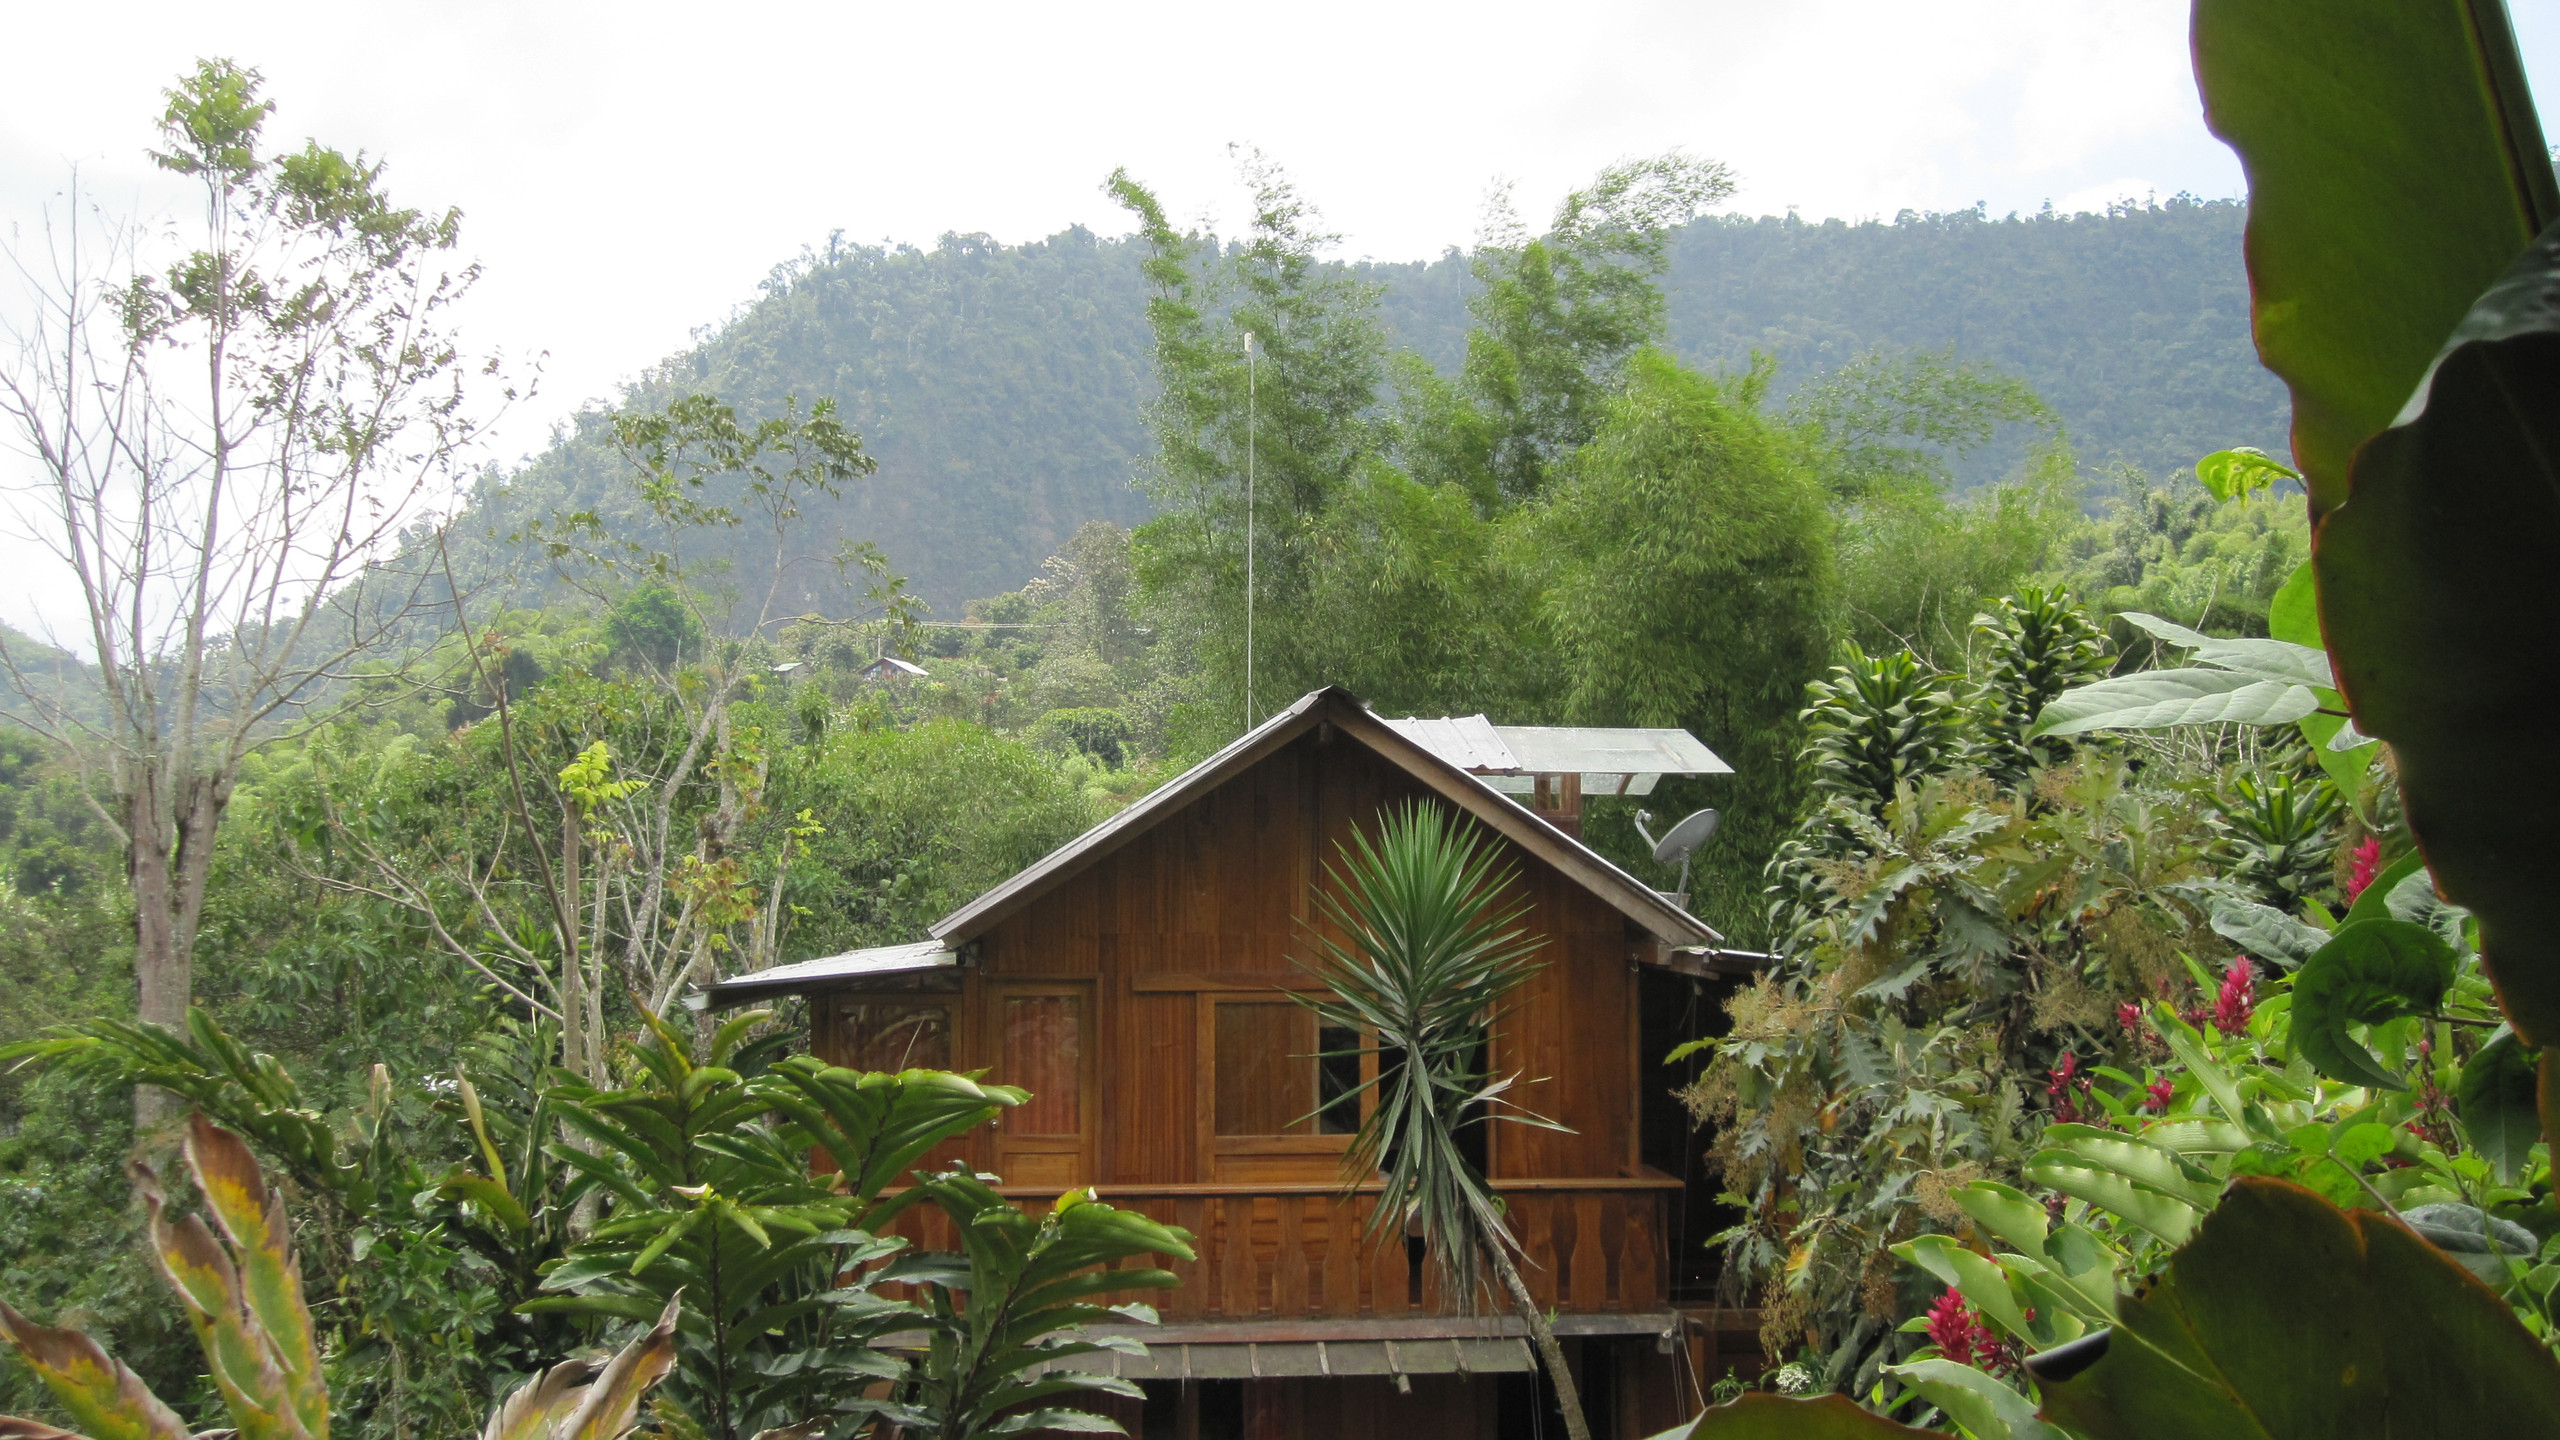 Mindo, in the cloud forest